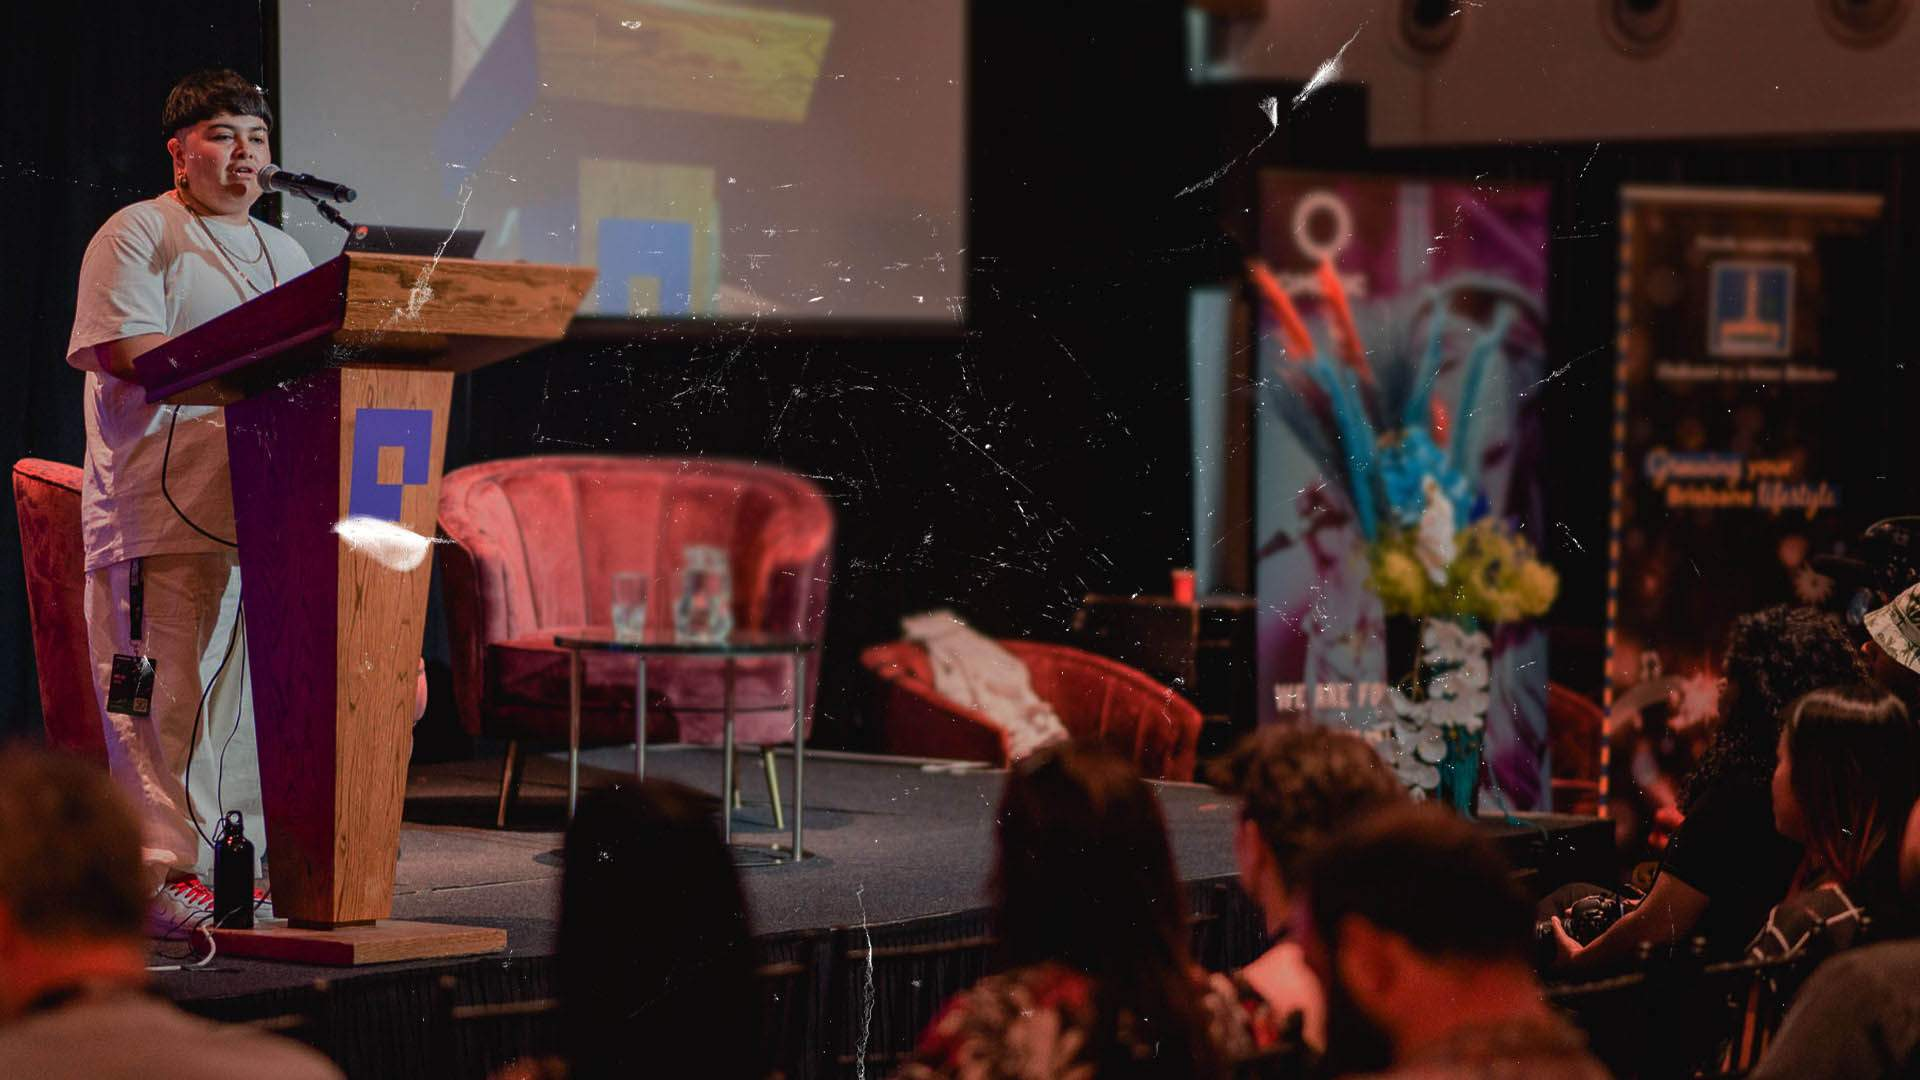 BIGSOUND 2020 Has Scrapped Its Physical Plans and Will Now Go Ahead as a Virtual Festival